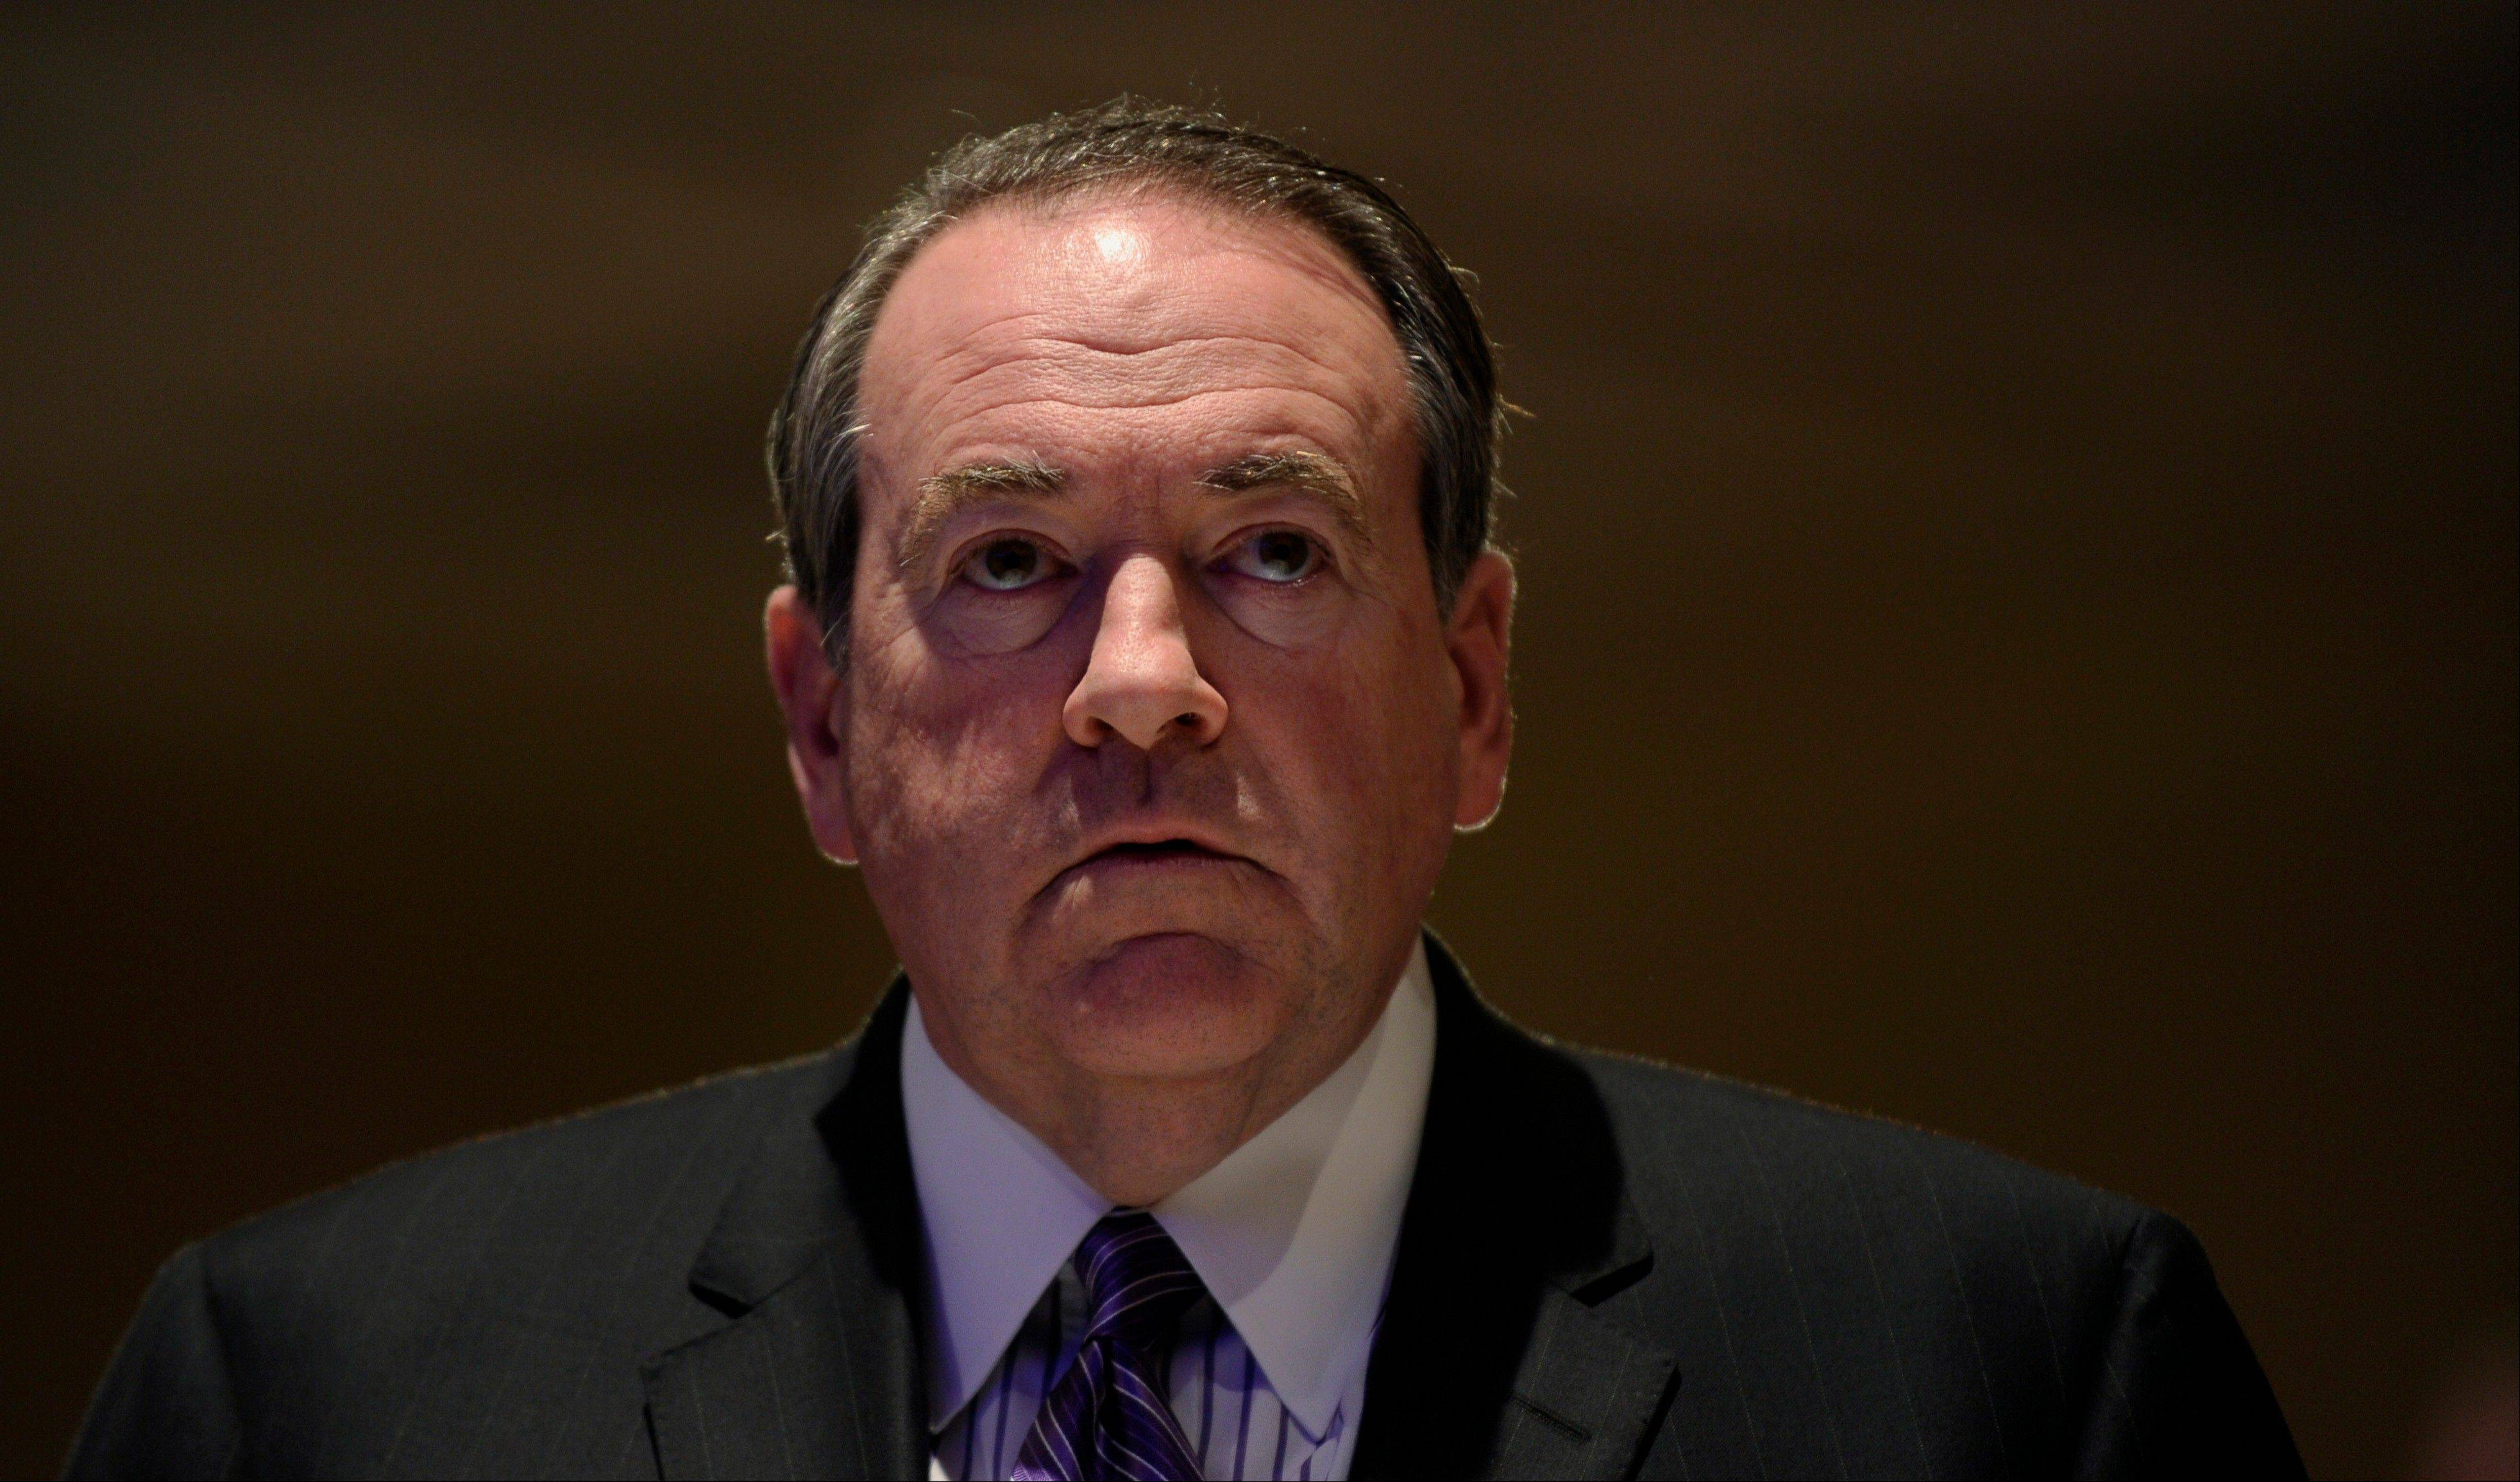 Former Arkansas Gov. Mike Huckabee, speaking at the Republican National Committee winter meeting Thursday, said the GOP needs to broaden its appeal and end its internal divisiveness.